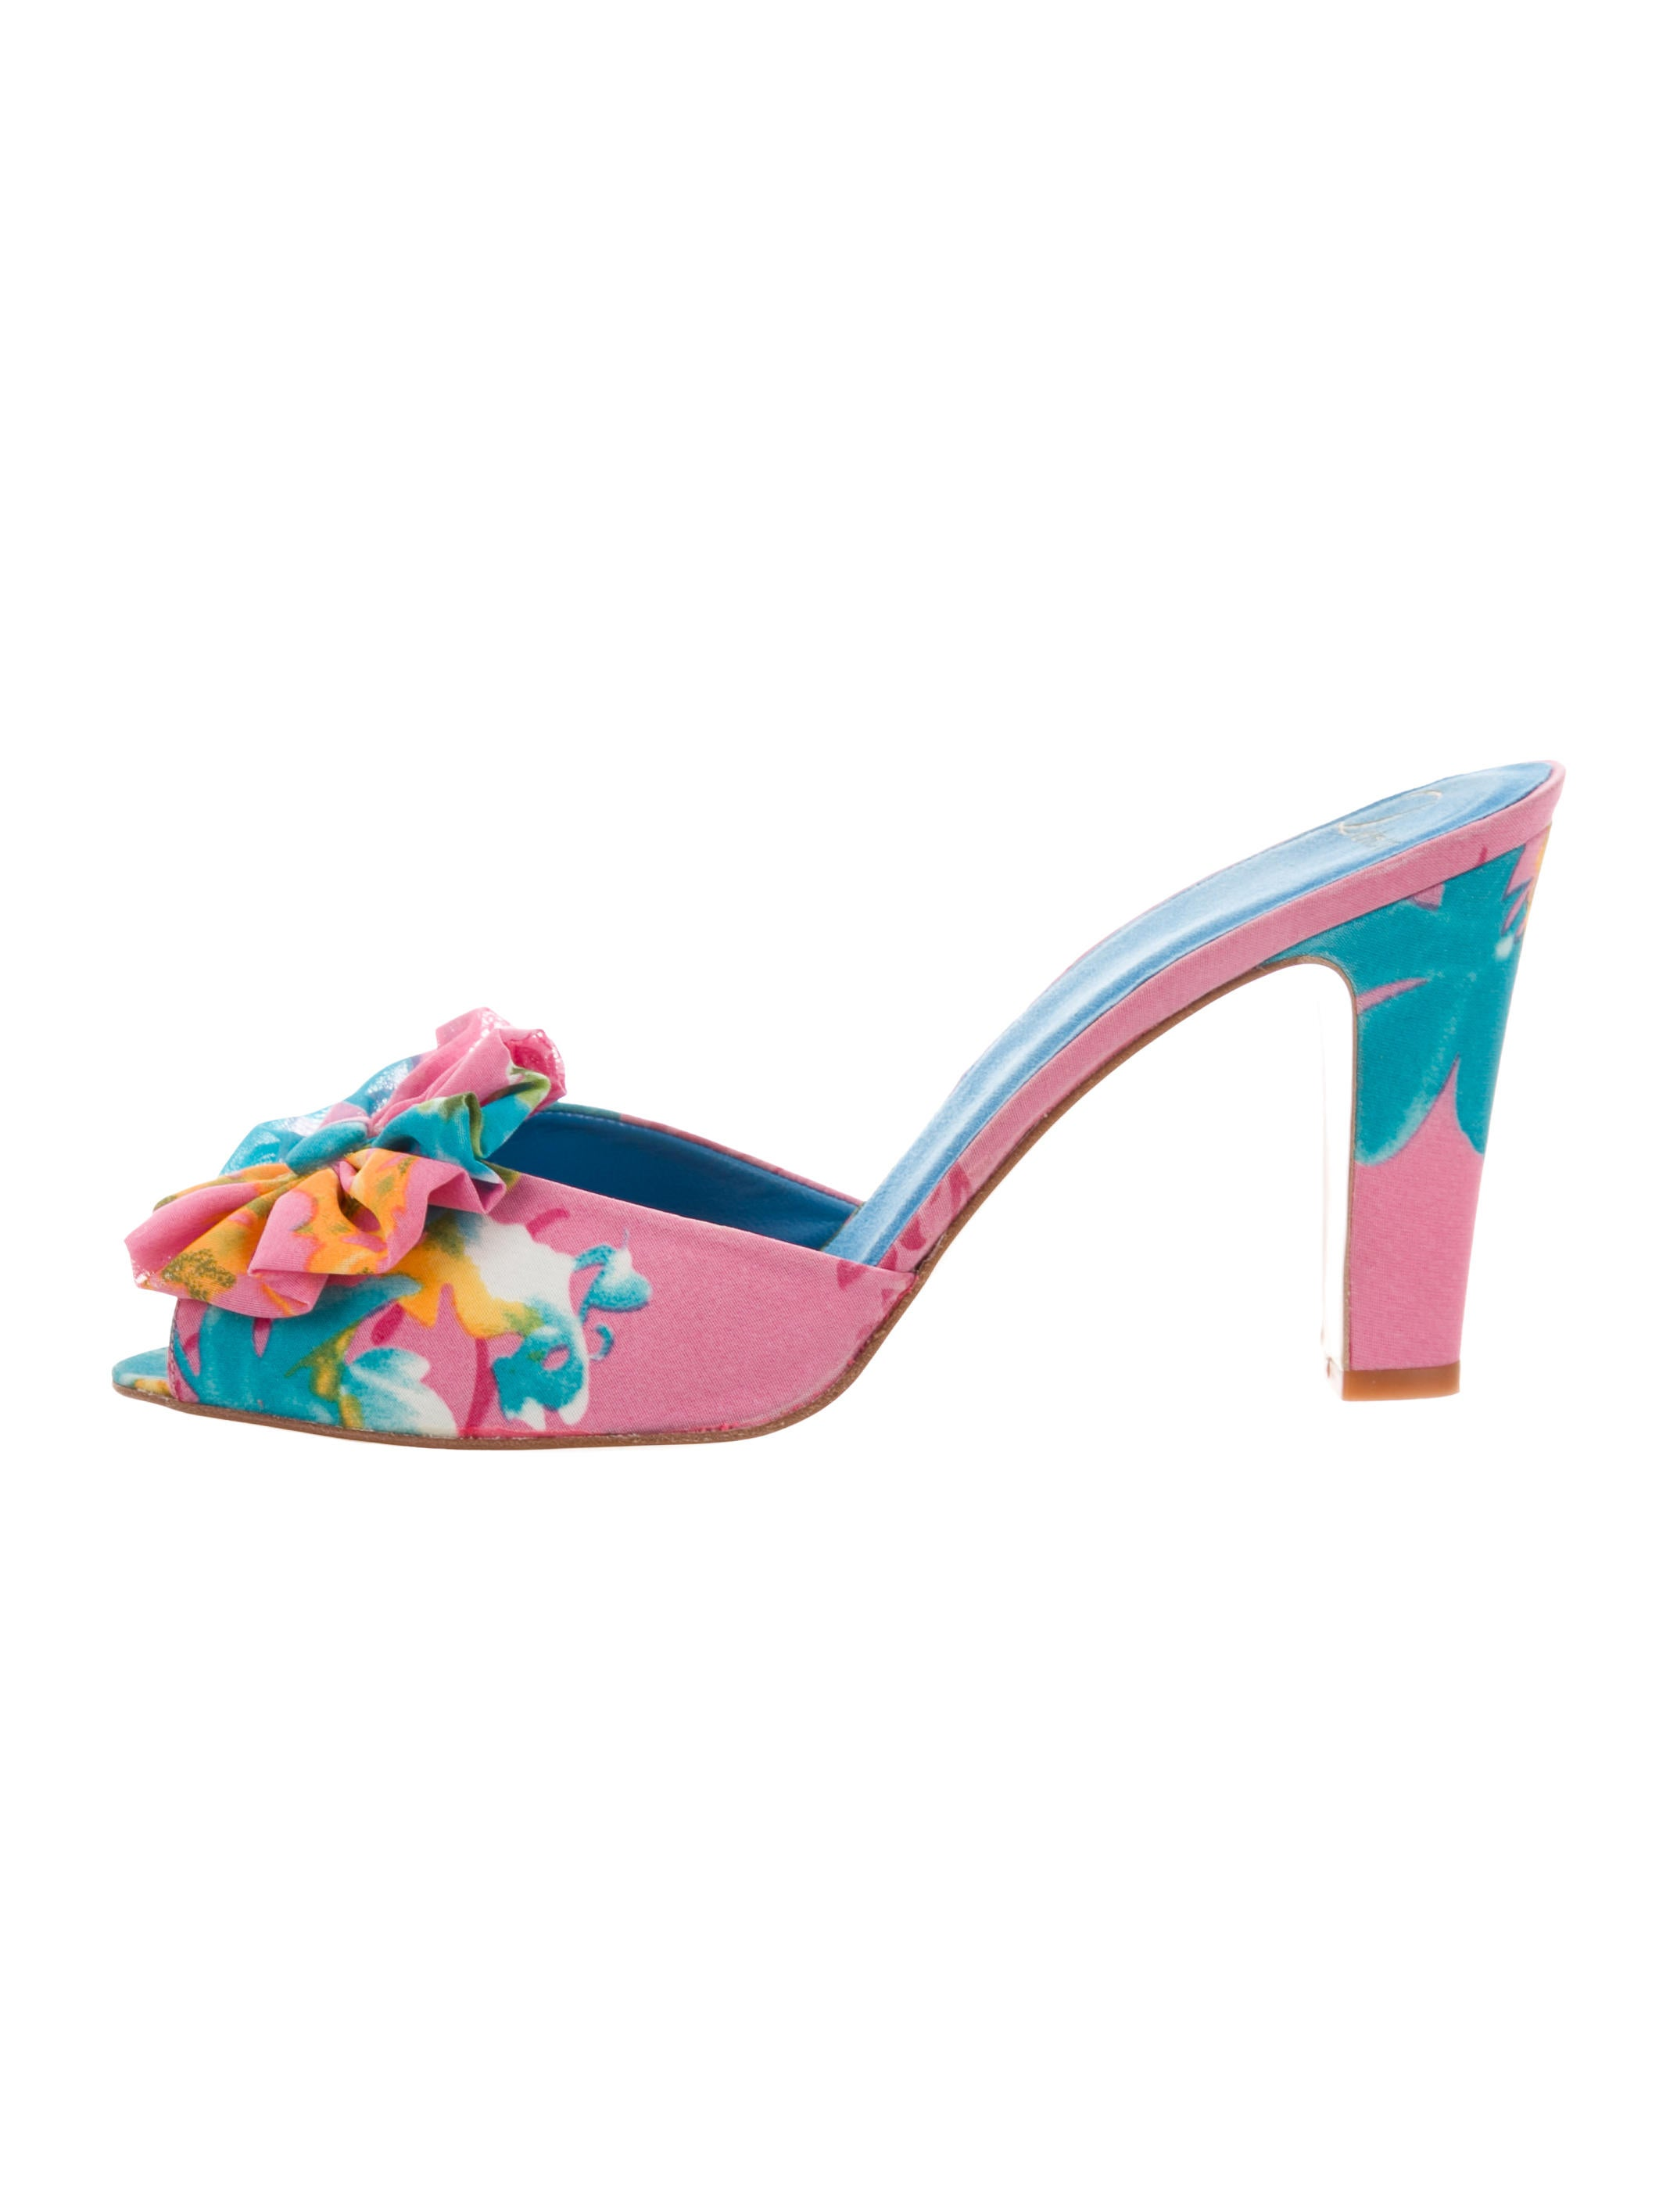 Delman Floral Peep-Toe Mules w/ Tags comfortable cheap price buy cheap outlet store MhIk35EG